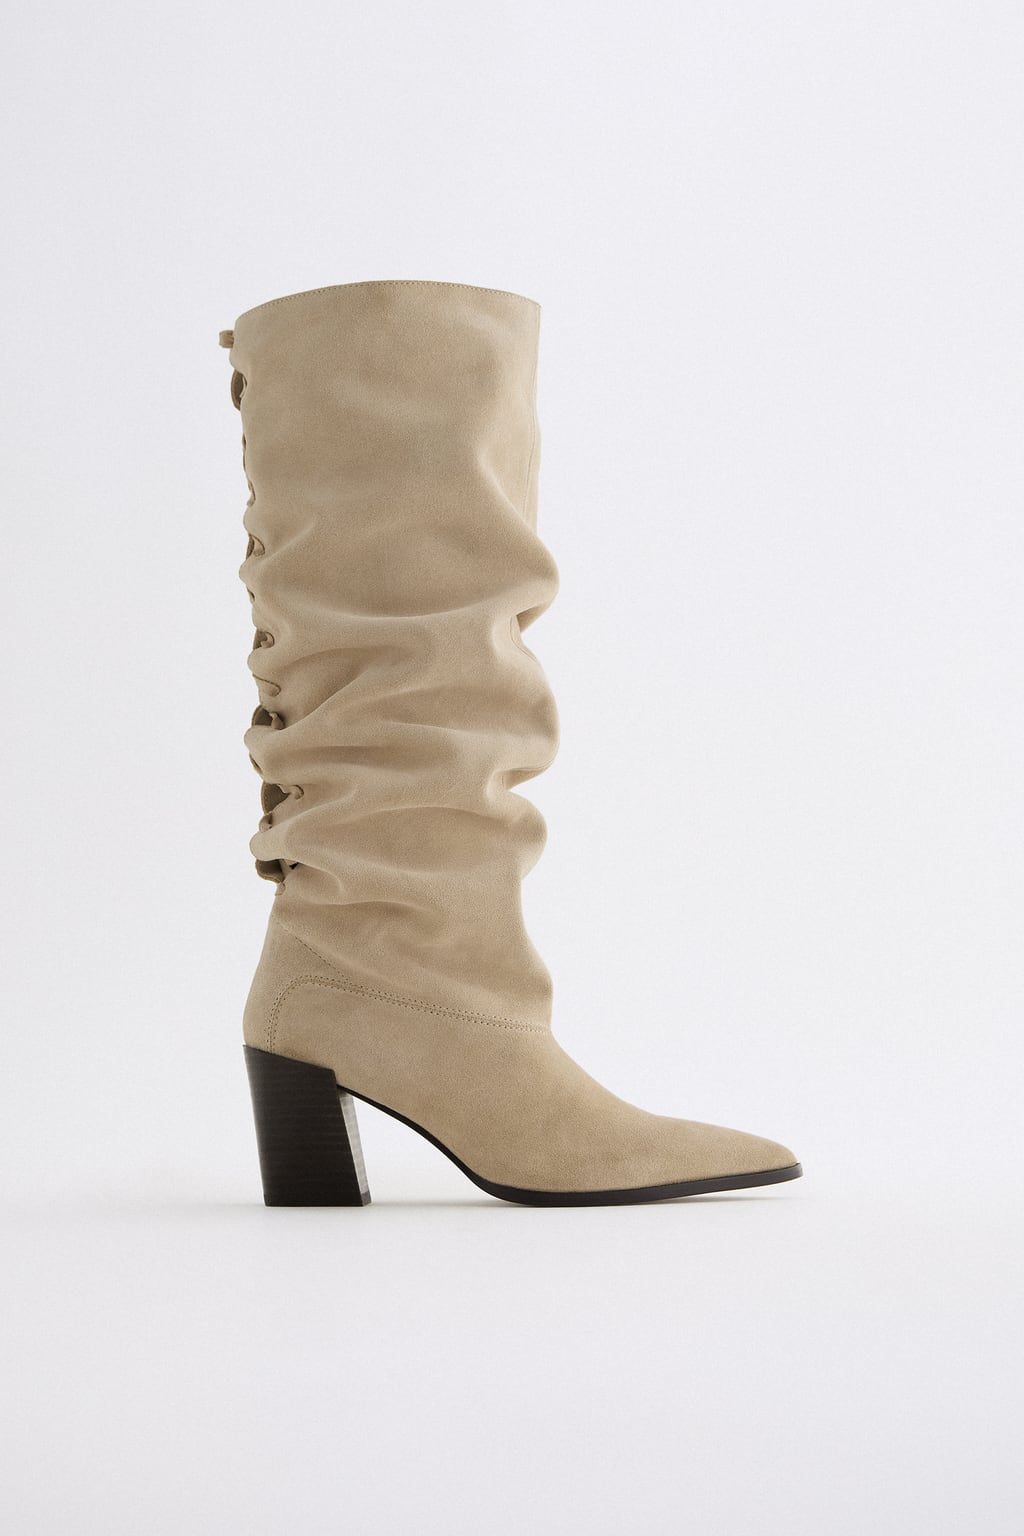 https://www.zara.com/jp/ja/woman-shoes-boots-l1263.html